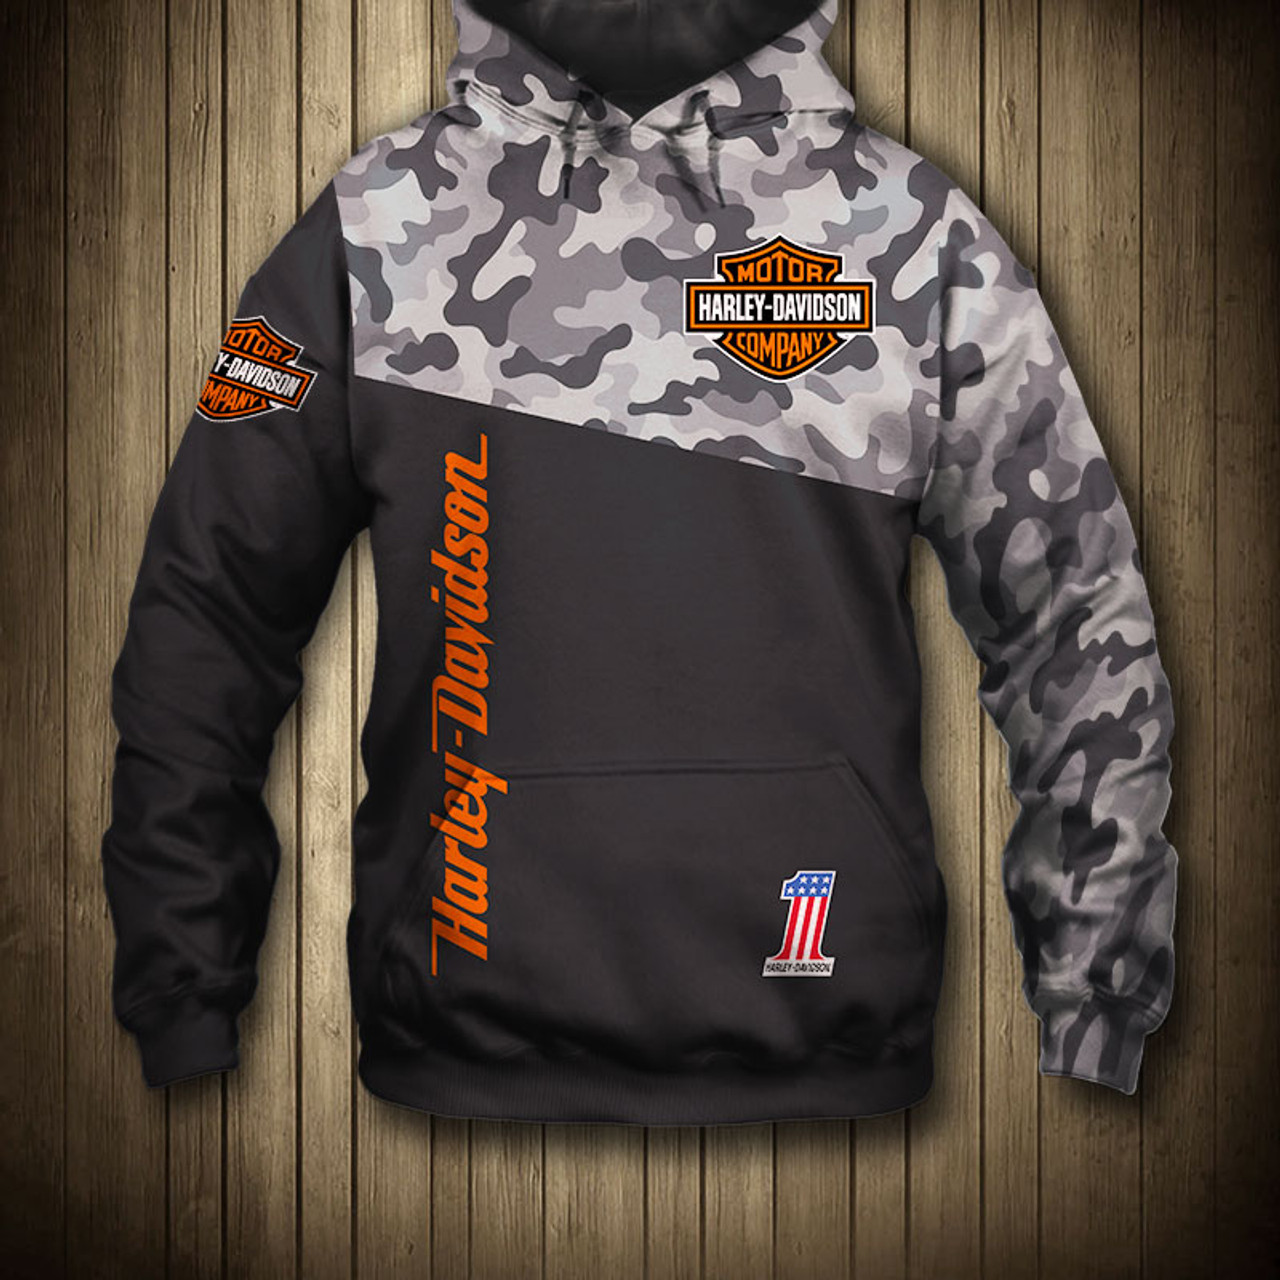 *(OFFICIAL-HARLEY-DAVIDSON-MOTORCYCLE-DESERT-CAMO.PULLOVER-HOODIES/NICE-3D-CUSTOM-GRAPHIC-PRINTED & DOUBLE-SIDED-ALL-OVER-DESIGN/CLASSIC-OFFICIAL-CUSTOM-HARLEY-LOGOS & OFFICIAL-HARLEY-COLORS/WARM-PREMIUM-RIDING-HARLEY-BIKERS-PULLOVER-POCKET-HOODIES)*